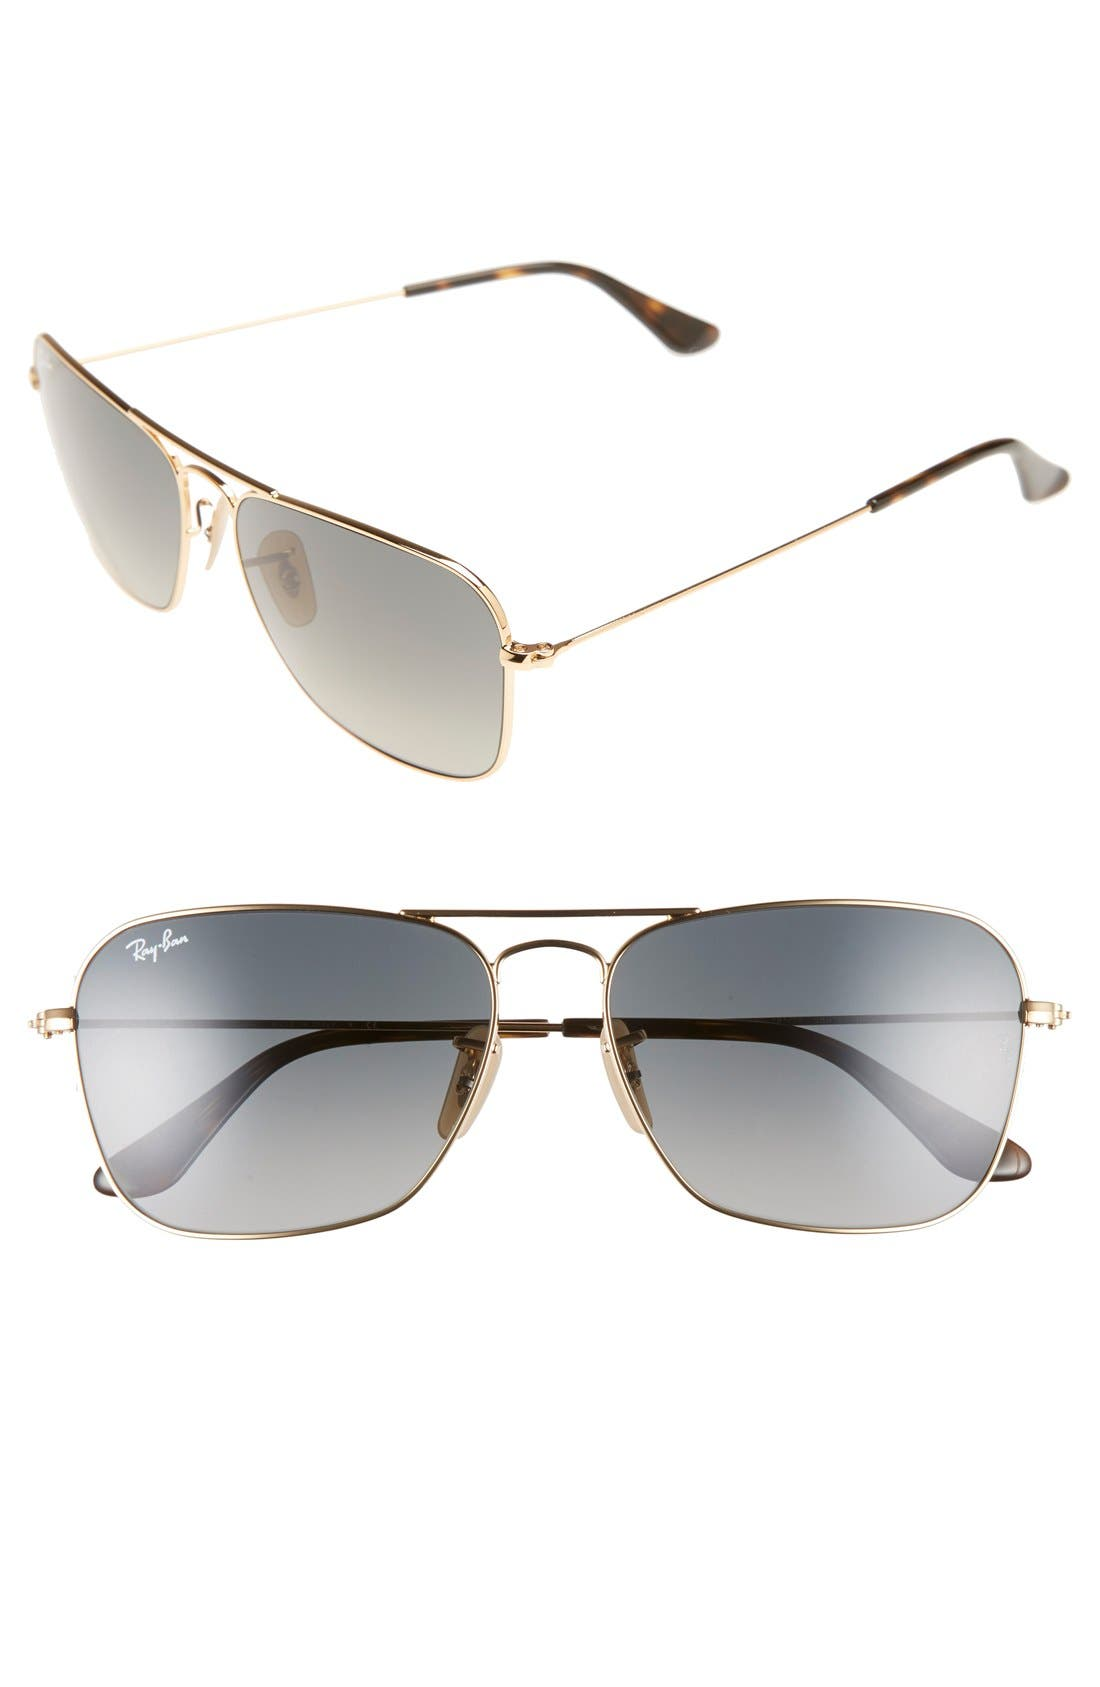 Caravan 58mm Aviator Sunglasses,                         Main,                         color, GOLD/ GREY GRADIENT